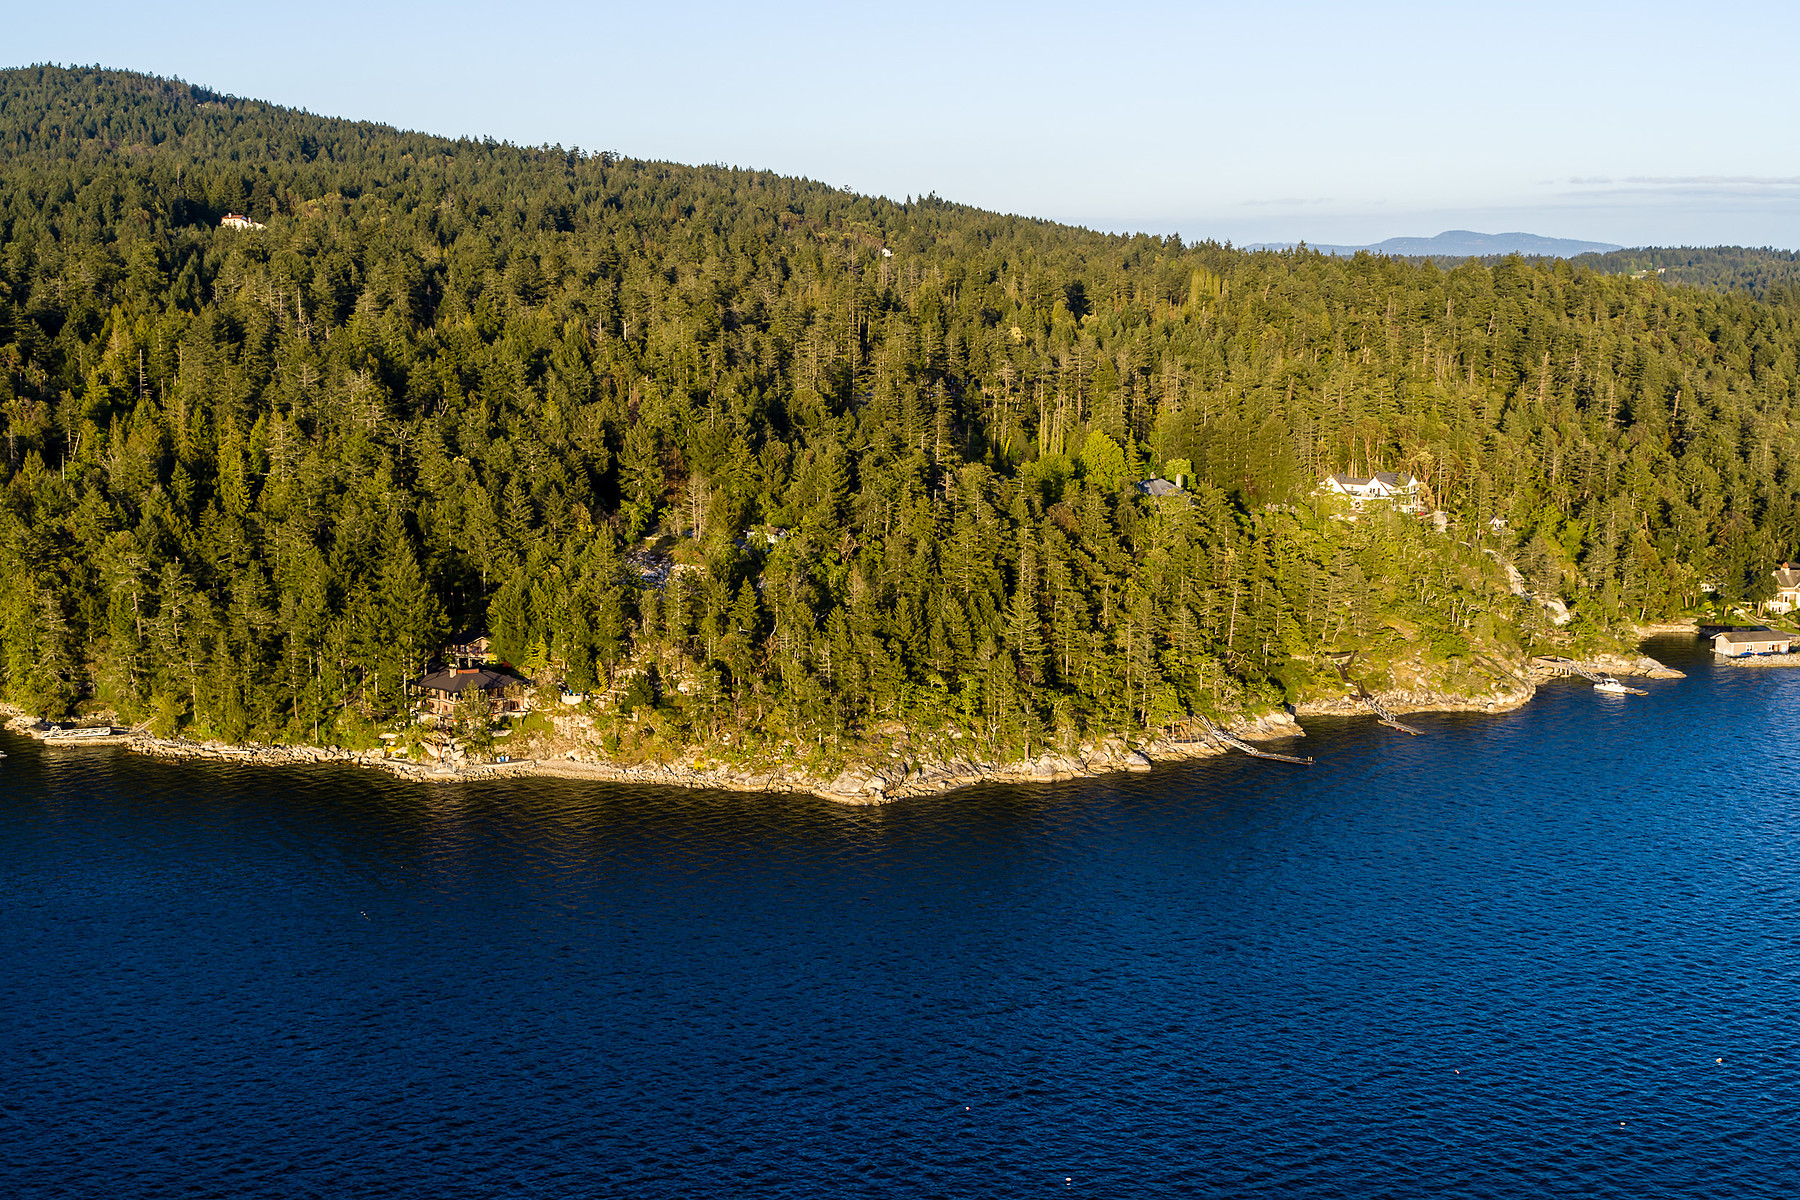 Land for Sale at Waterfront Dream Lot 8100 McPhail Road Other British Columbia, British Columbia V0X 1M0 Canada